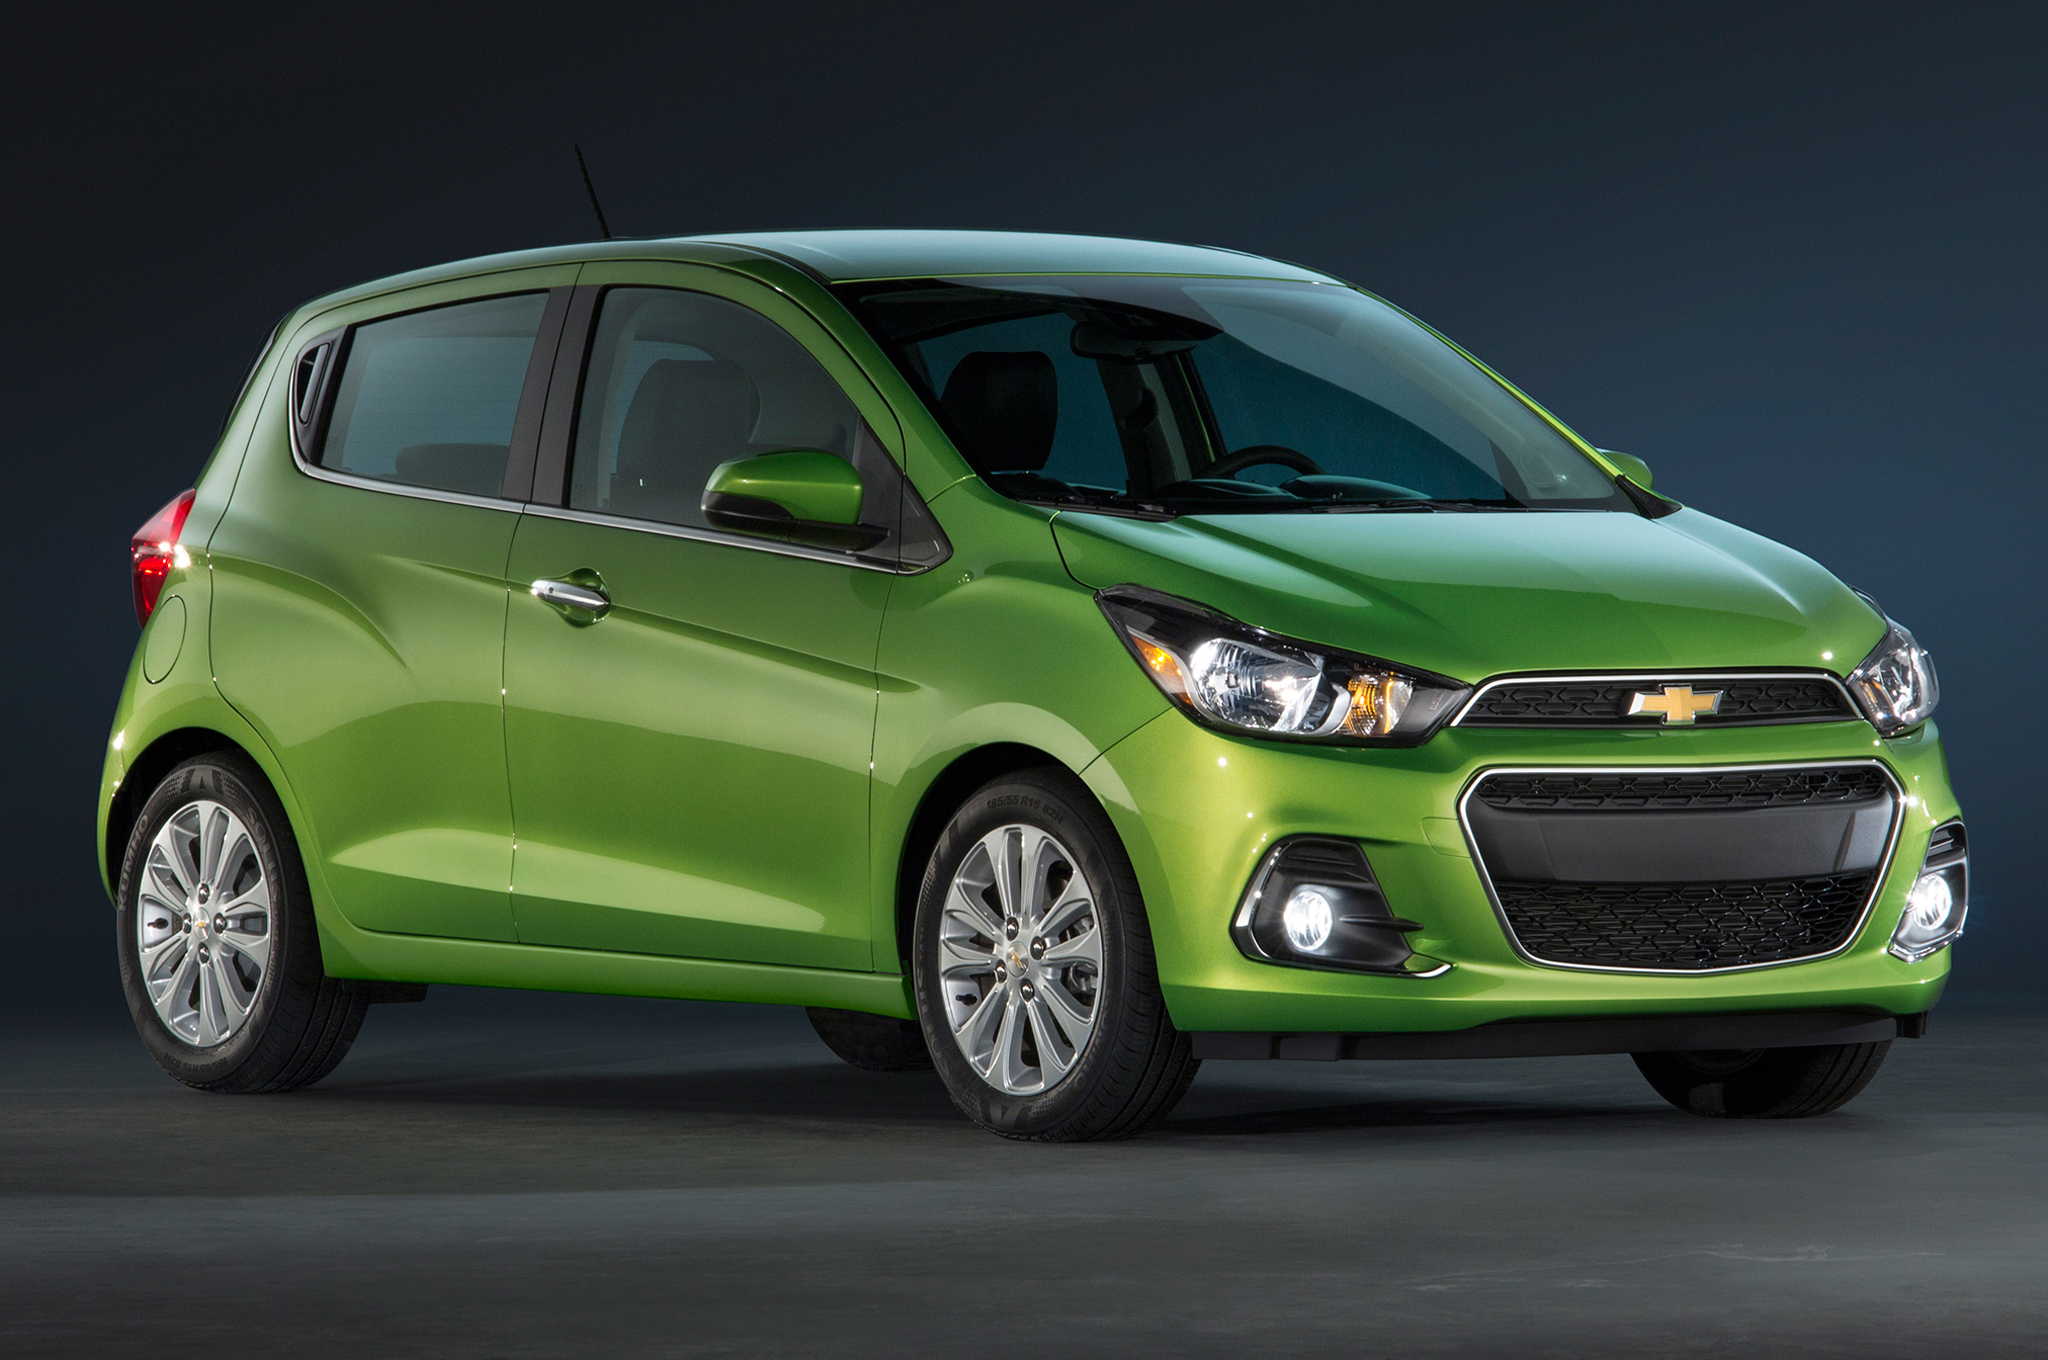 2016 chevrolet spark first look motortrend automotive fuse box wiring 2016 chevrolet spark first look [ 2048 x 1360 Pixel ]